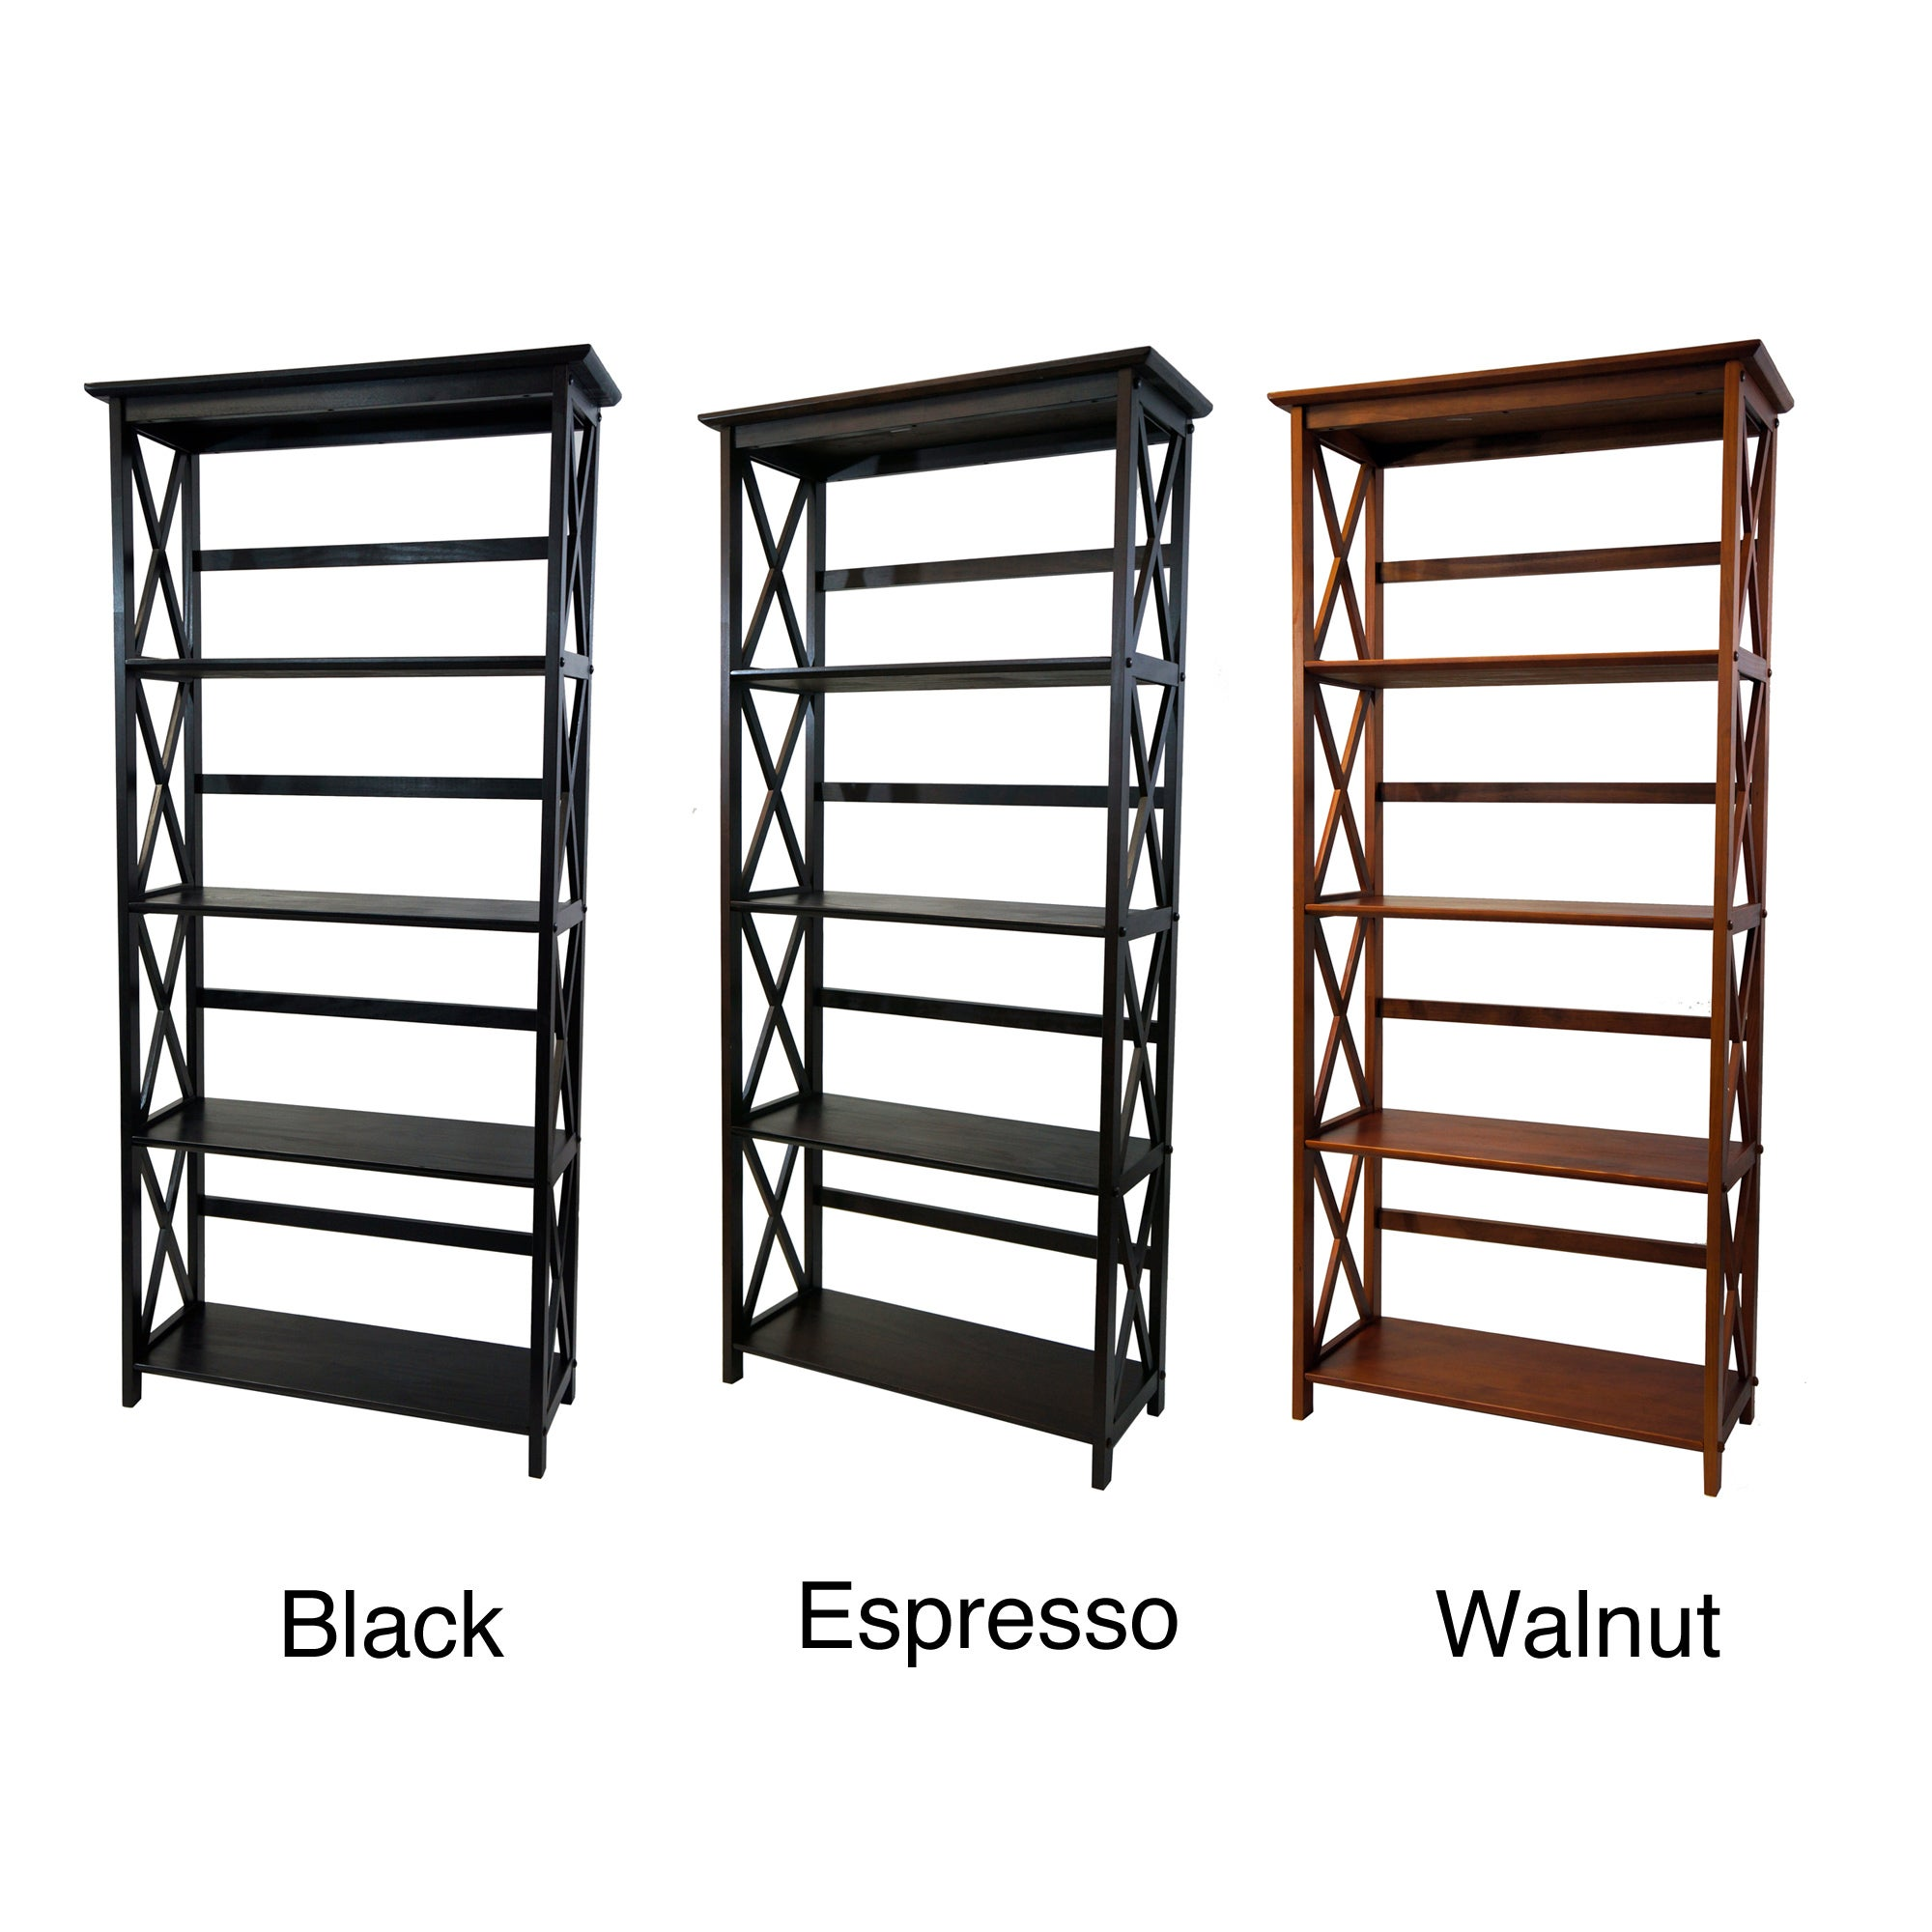 #995932 Montego 5 Tier Bookcase Overstock Shopping Great Deals On Media  with 2000x2000 px of Highly Rated Overstock Com Bookcases 20002000 picture/photo @ avoidforclosure.info